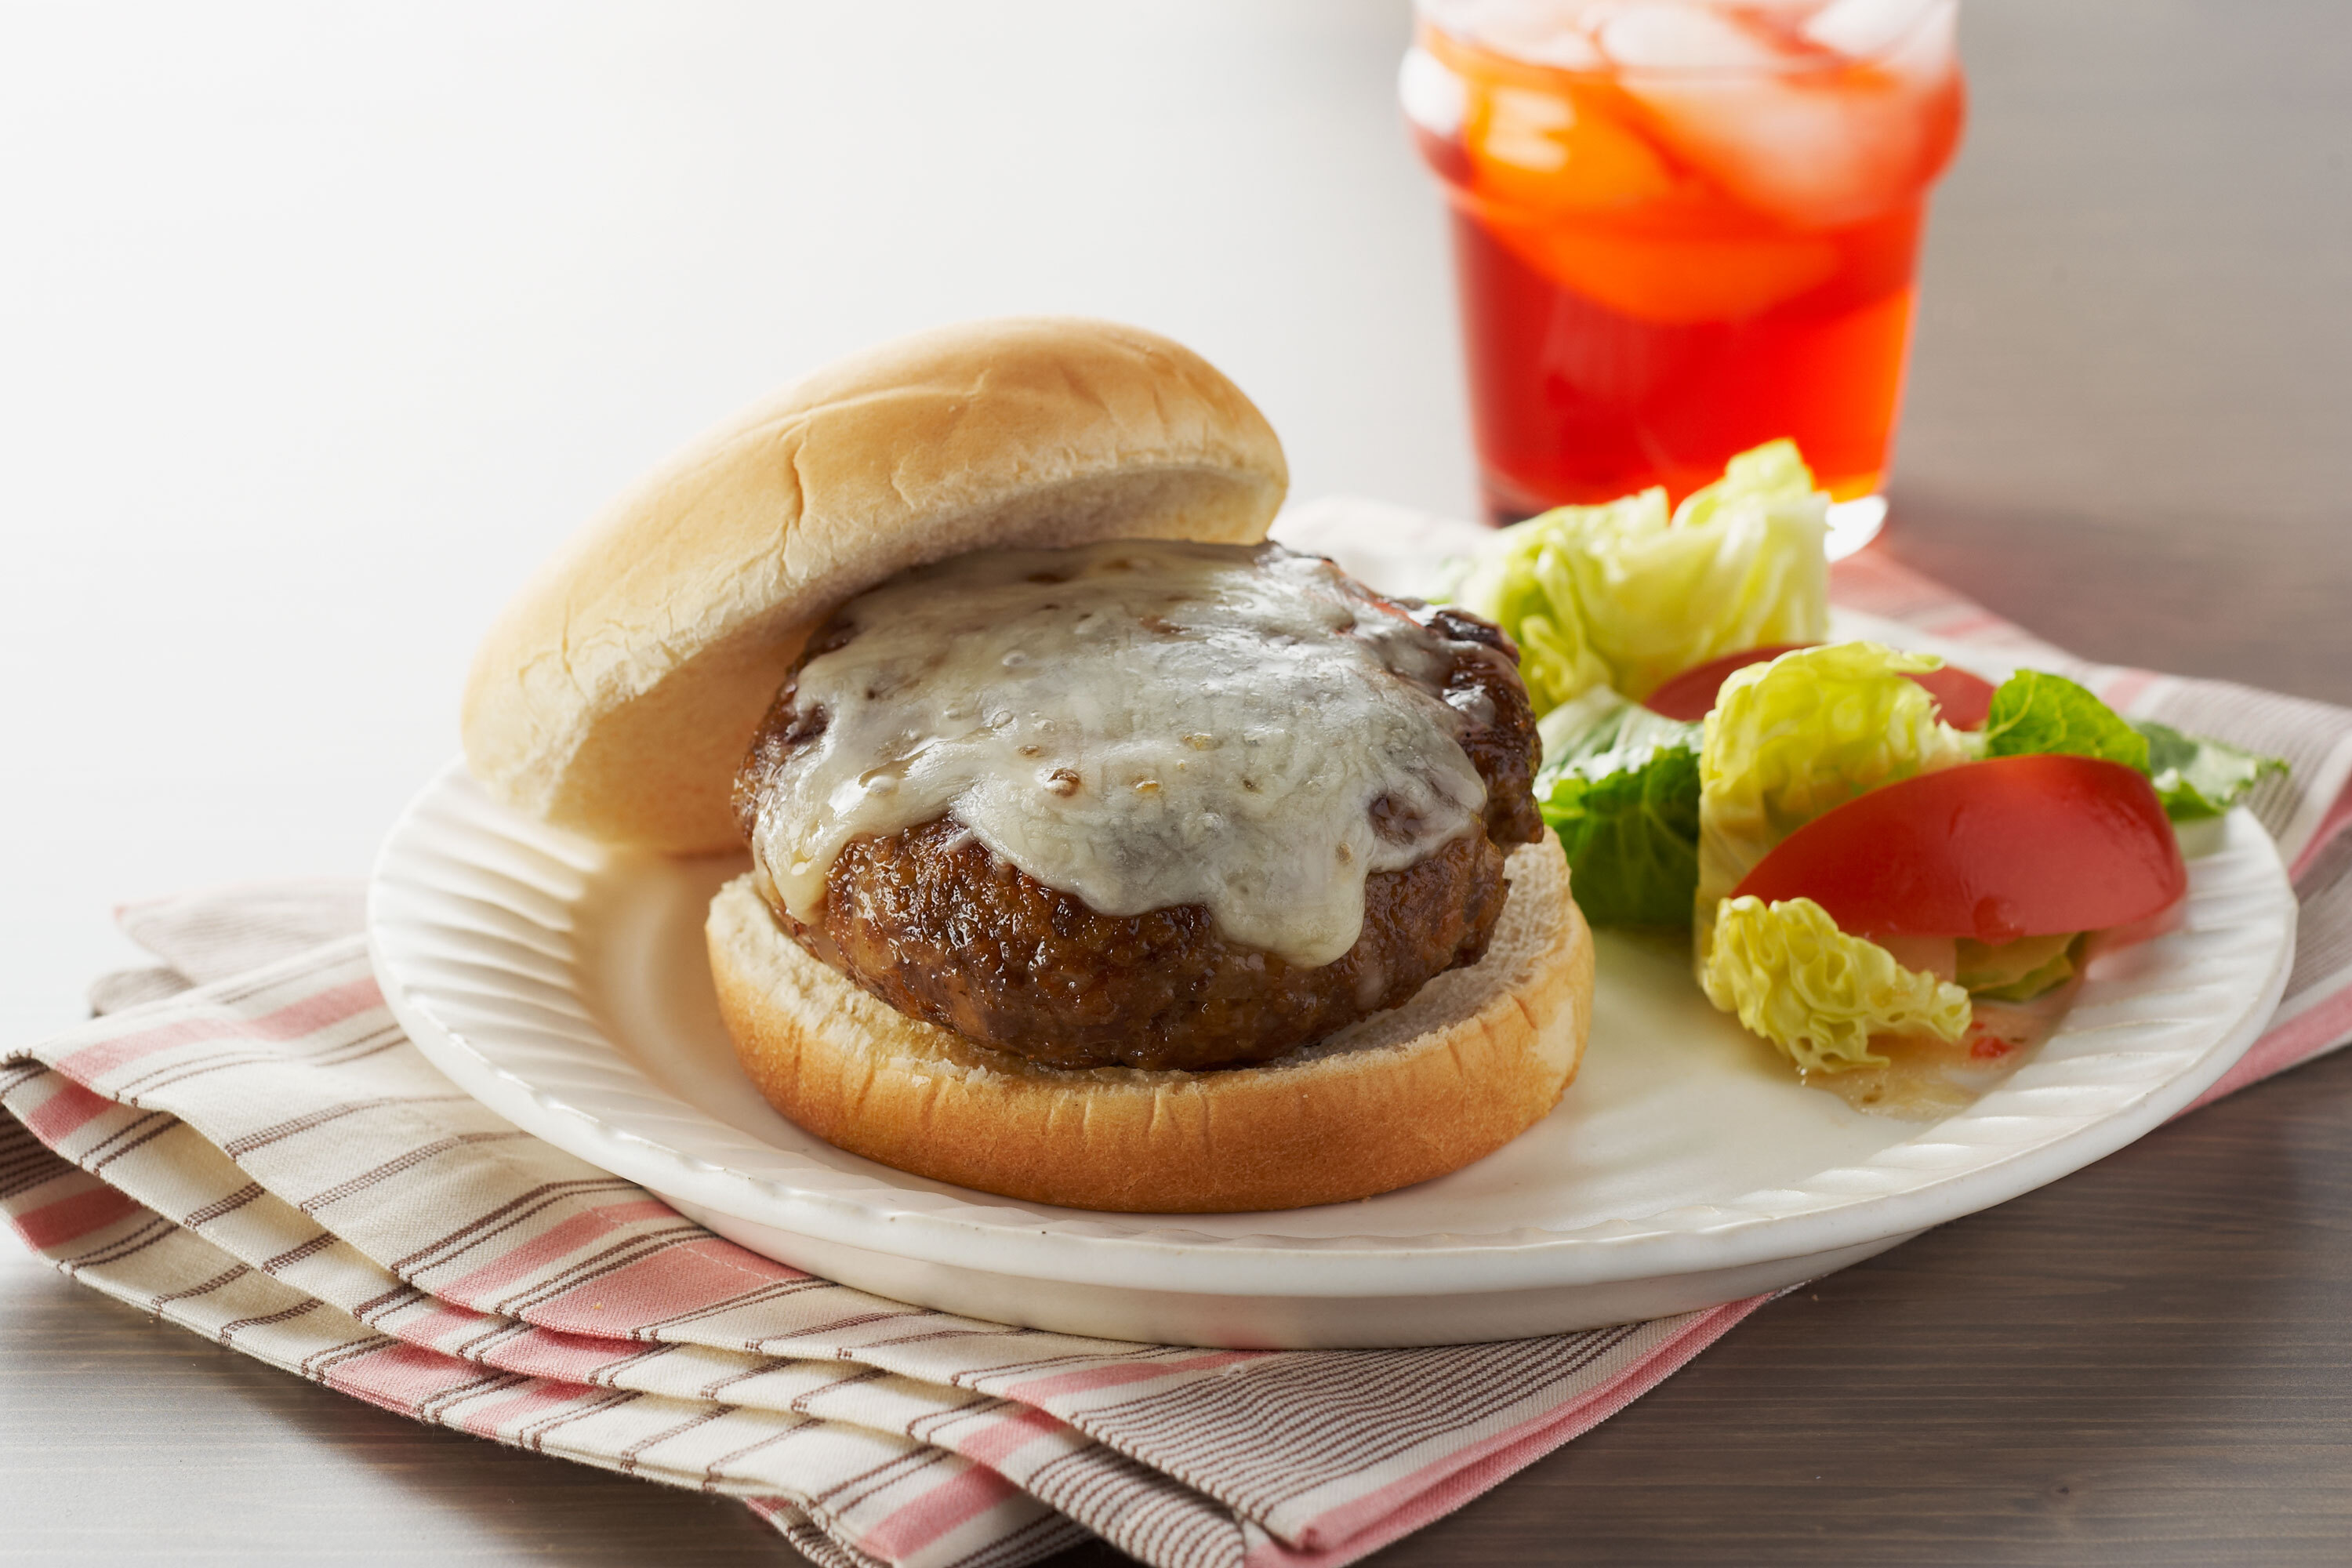 Five-Cheese Skillet Burgers